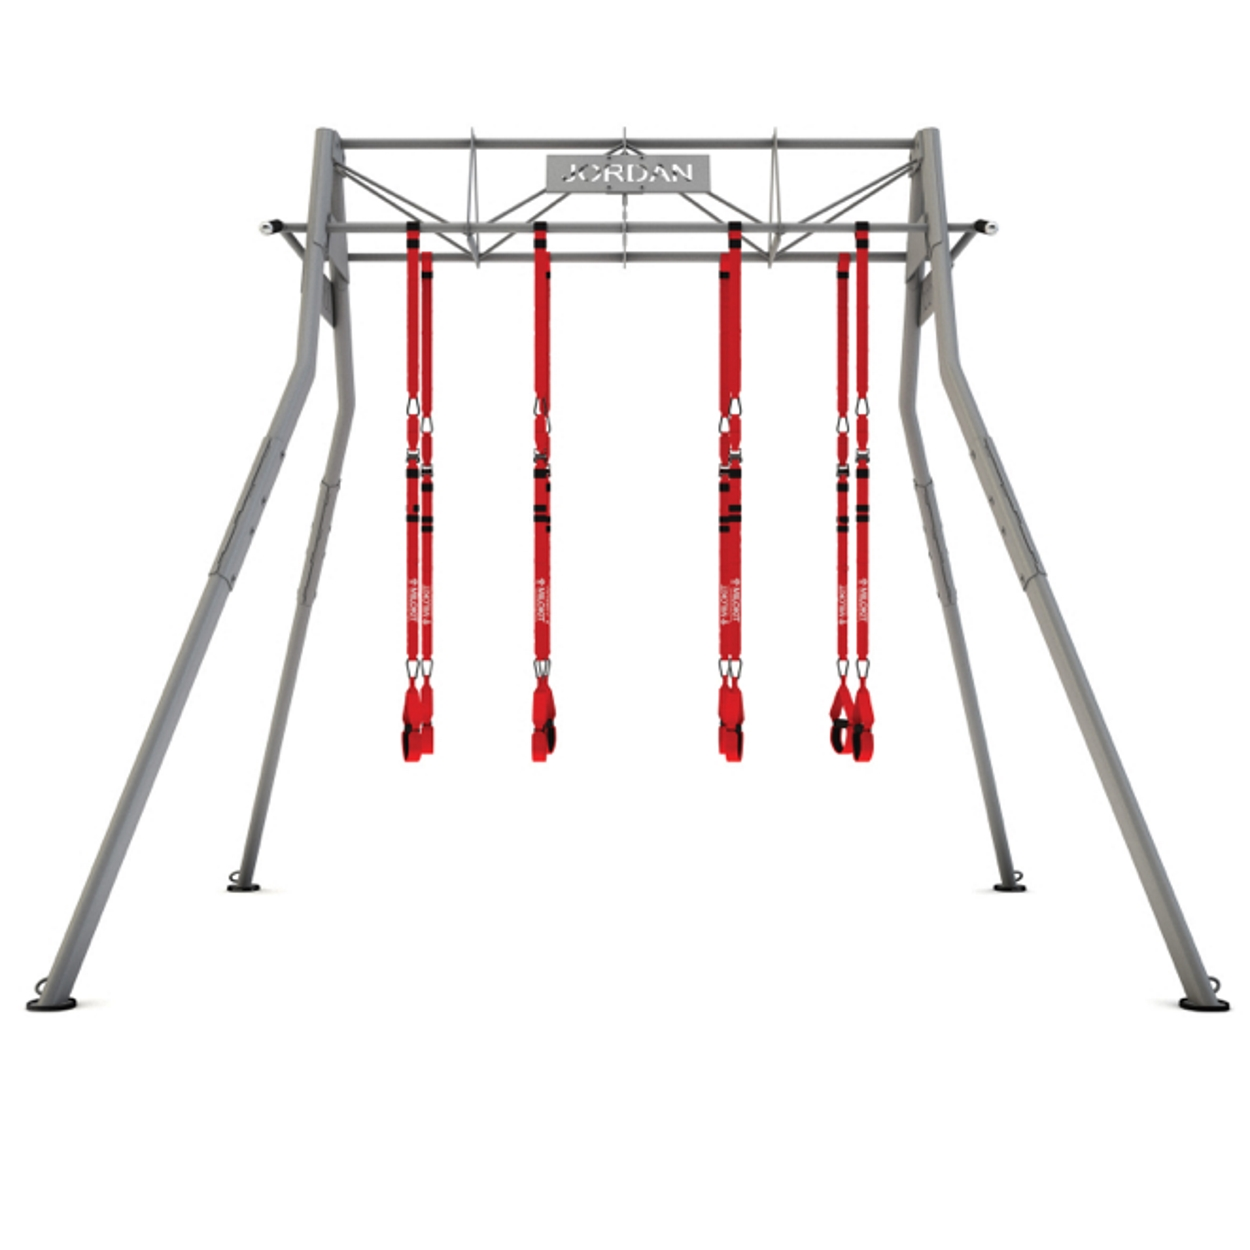 2m Suspension Training Station (Up to 4 Users)